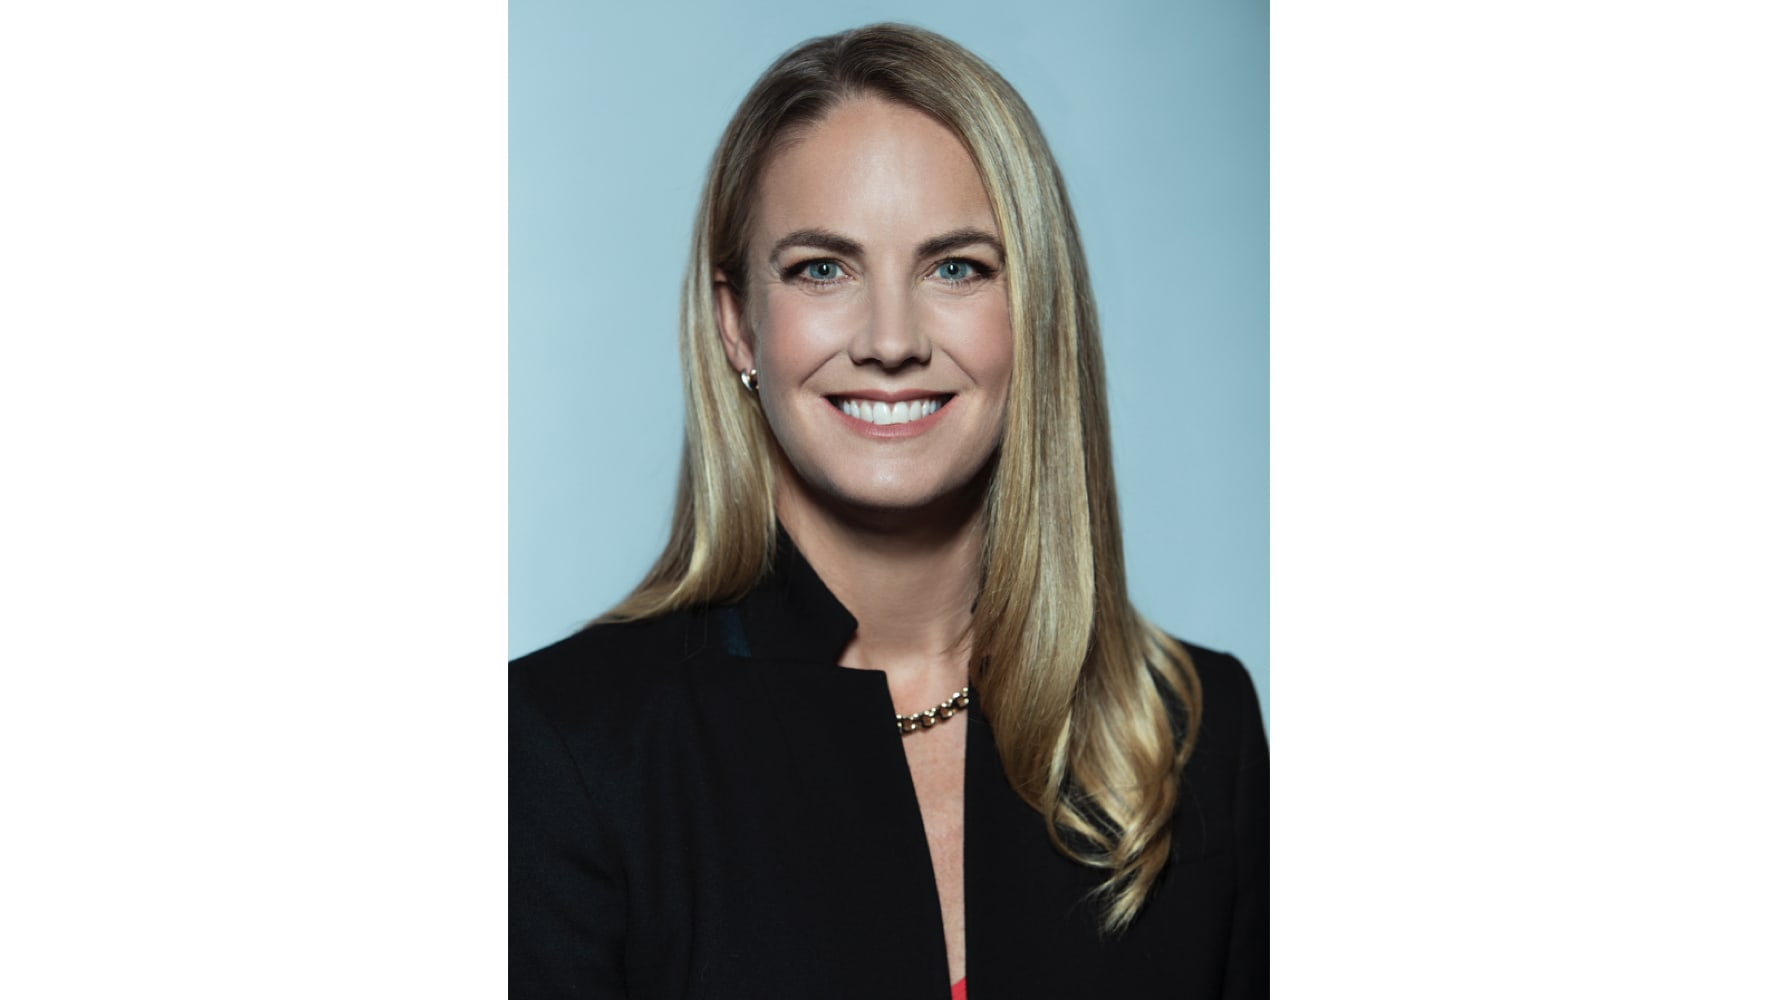 Kelly Campbell Promoted to President of Hulu